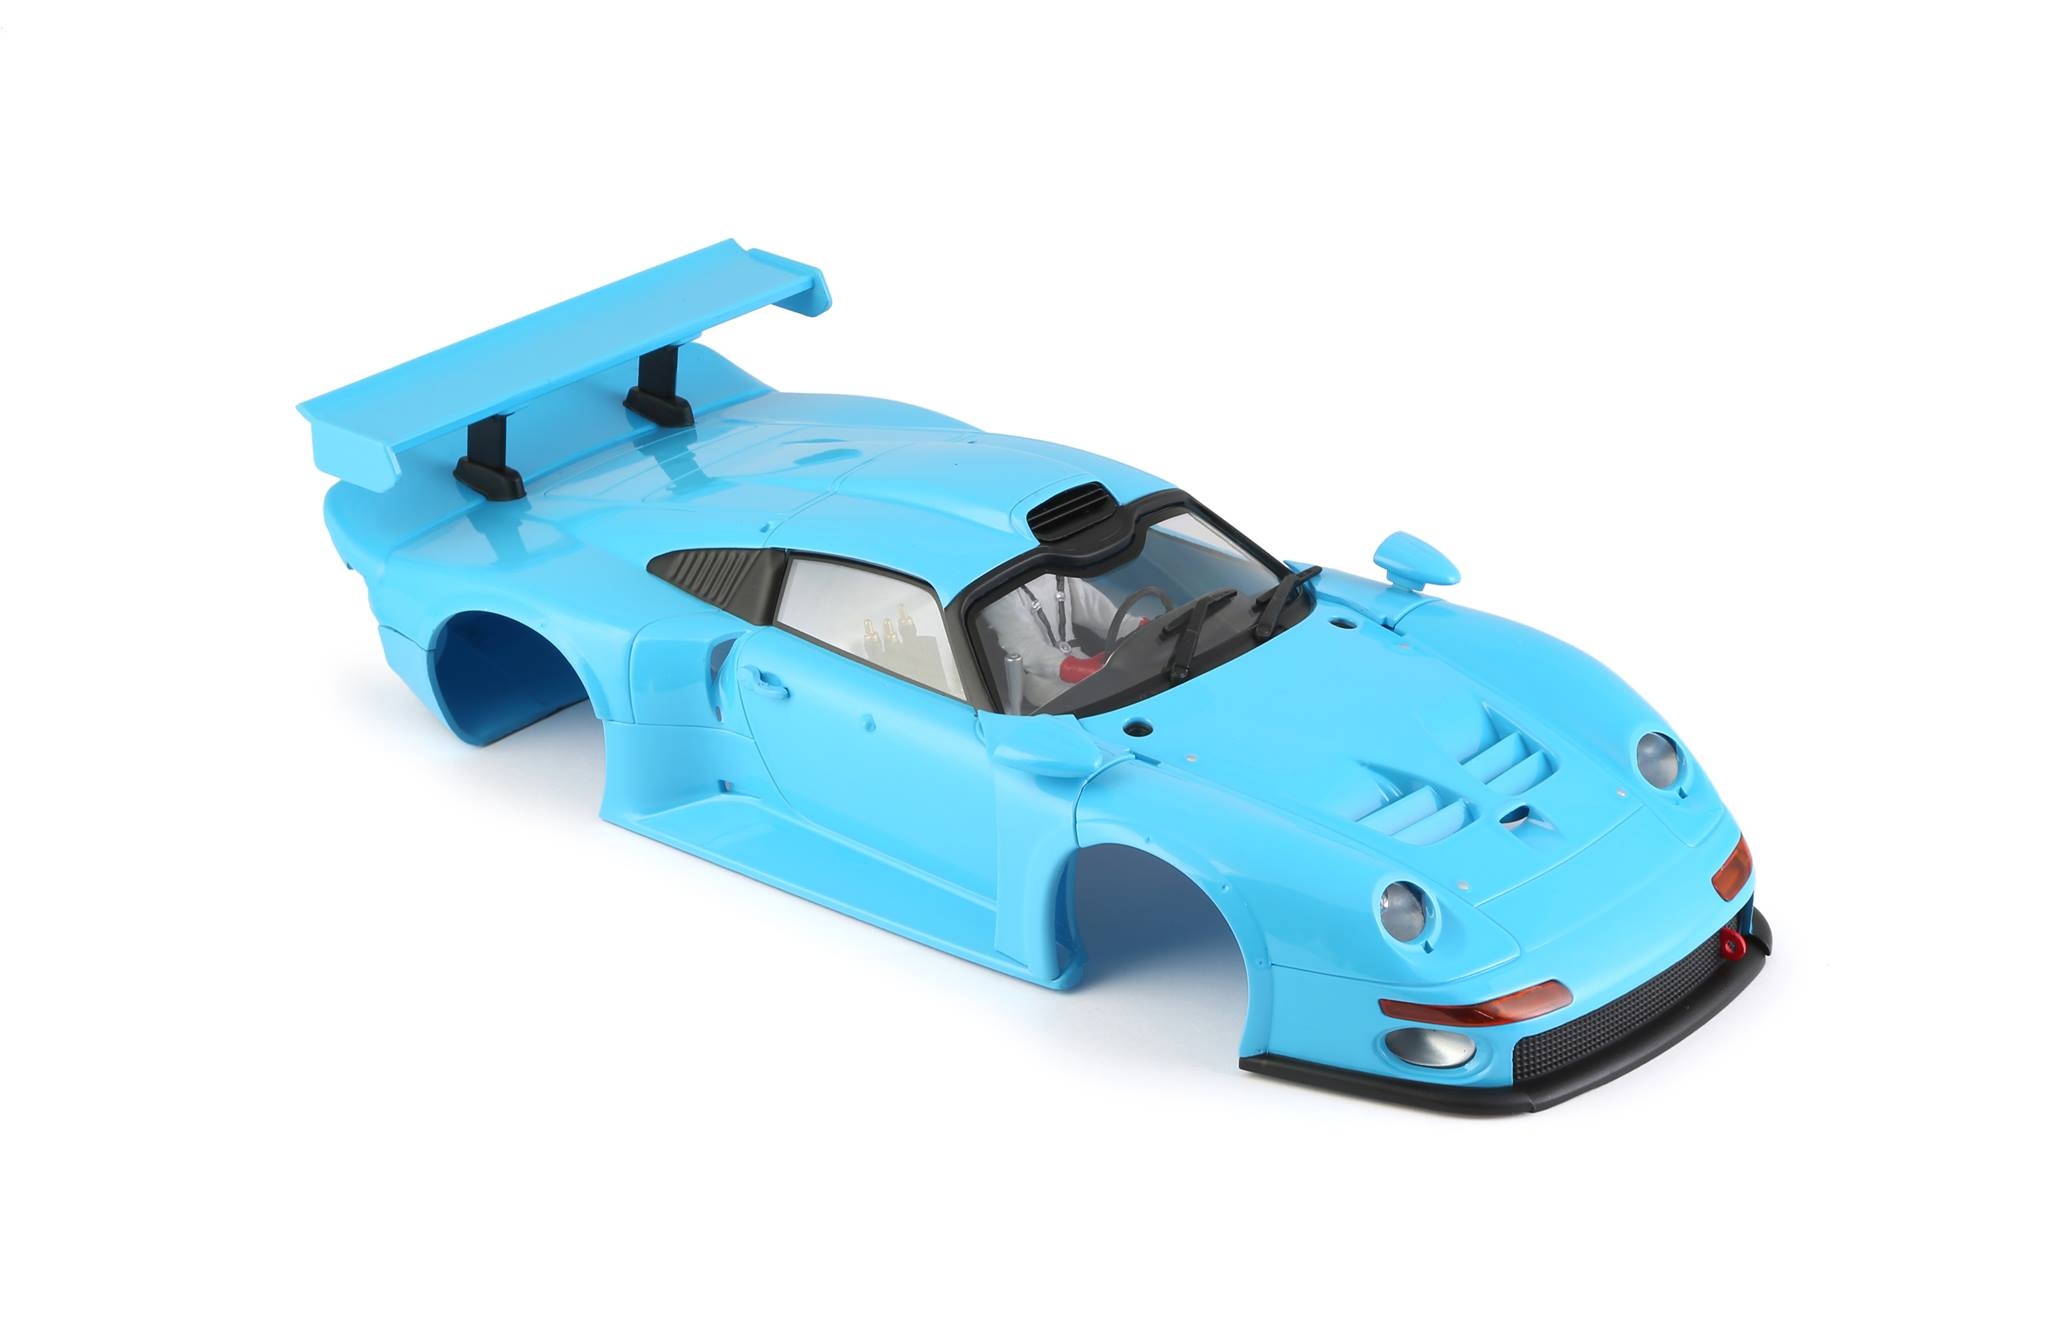 brm047 lb 1 24 scale porsche 911 gt1 painted kit light. Black Bedroom Furniture Sets. Home Design Ideas